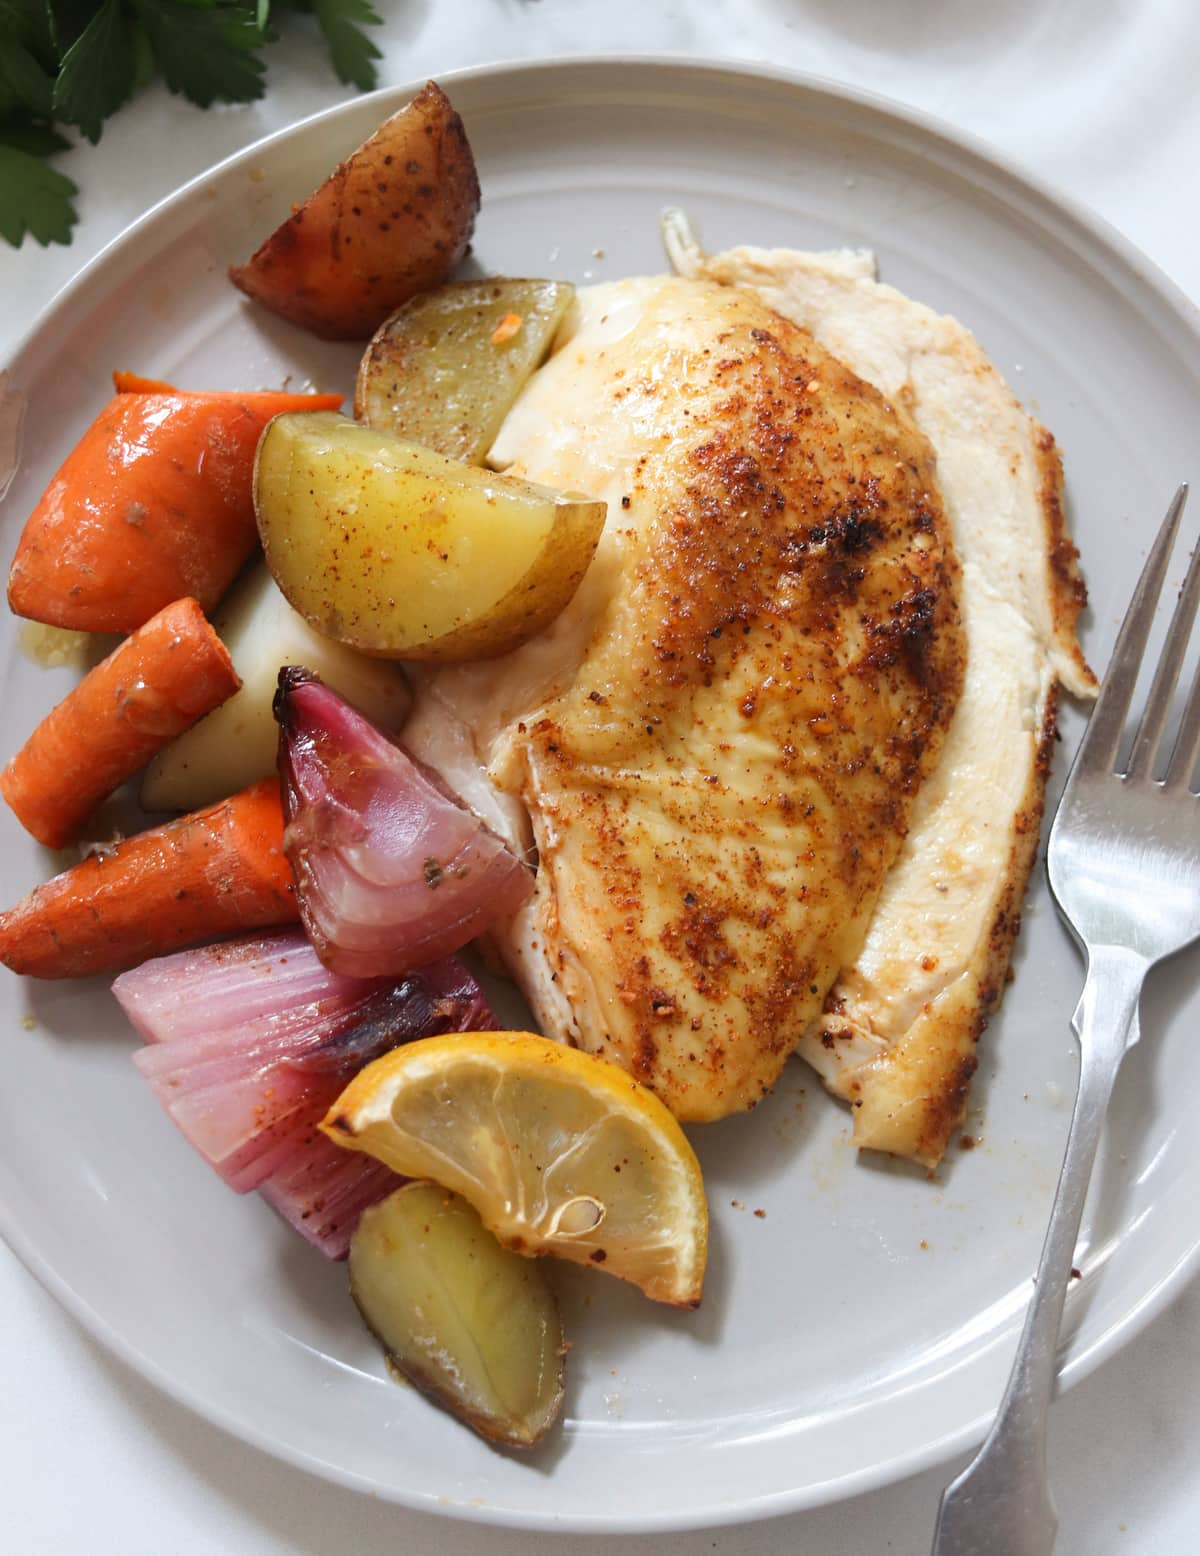 Two slices of cooked chicken breast on a small gray plate with roasted vegetables.